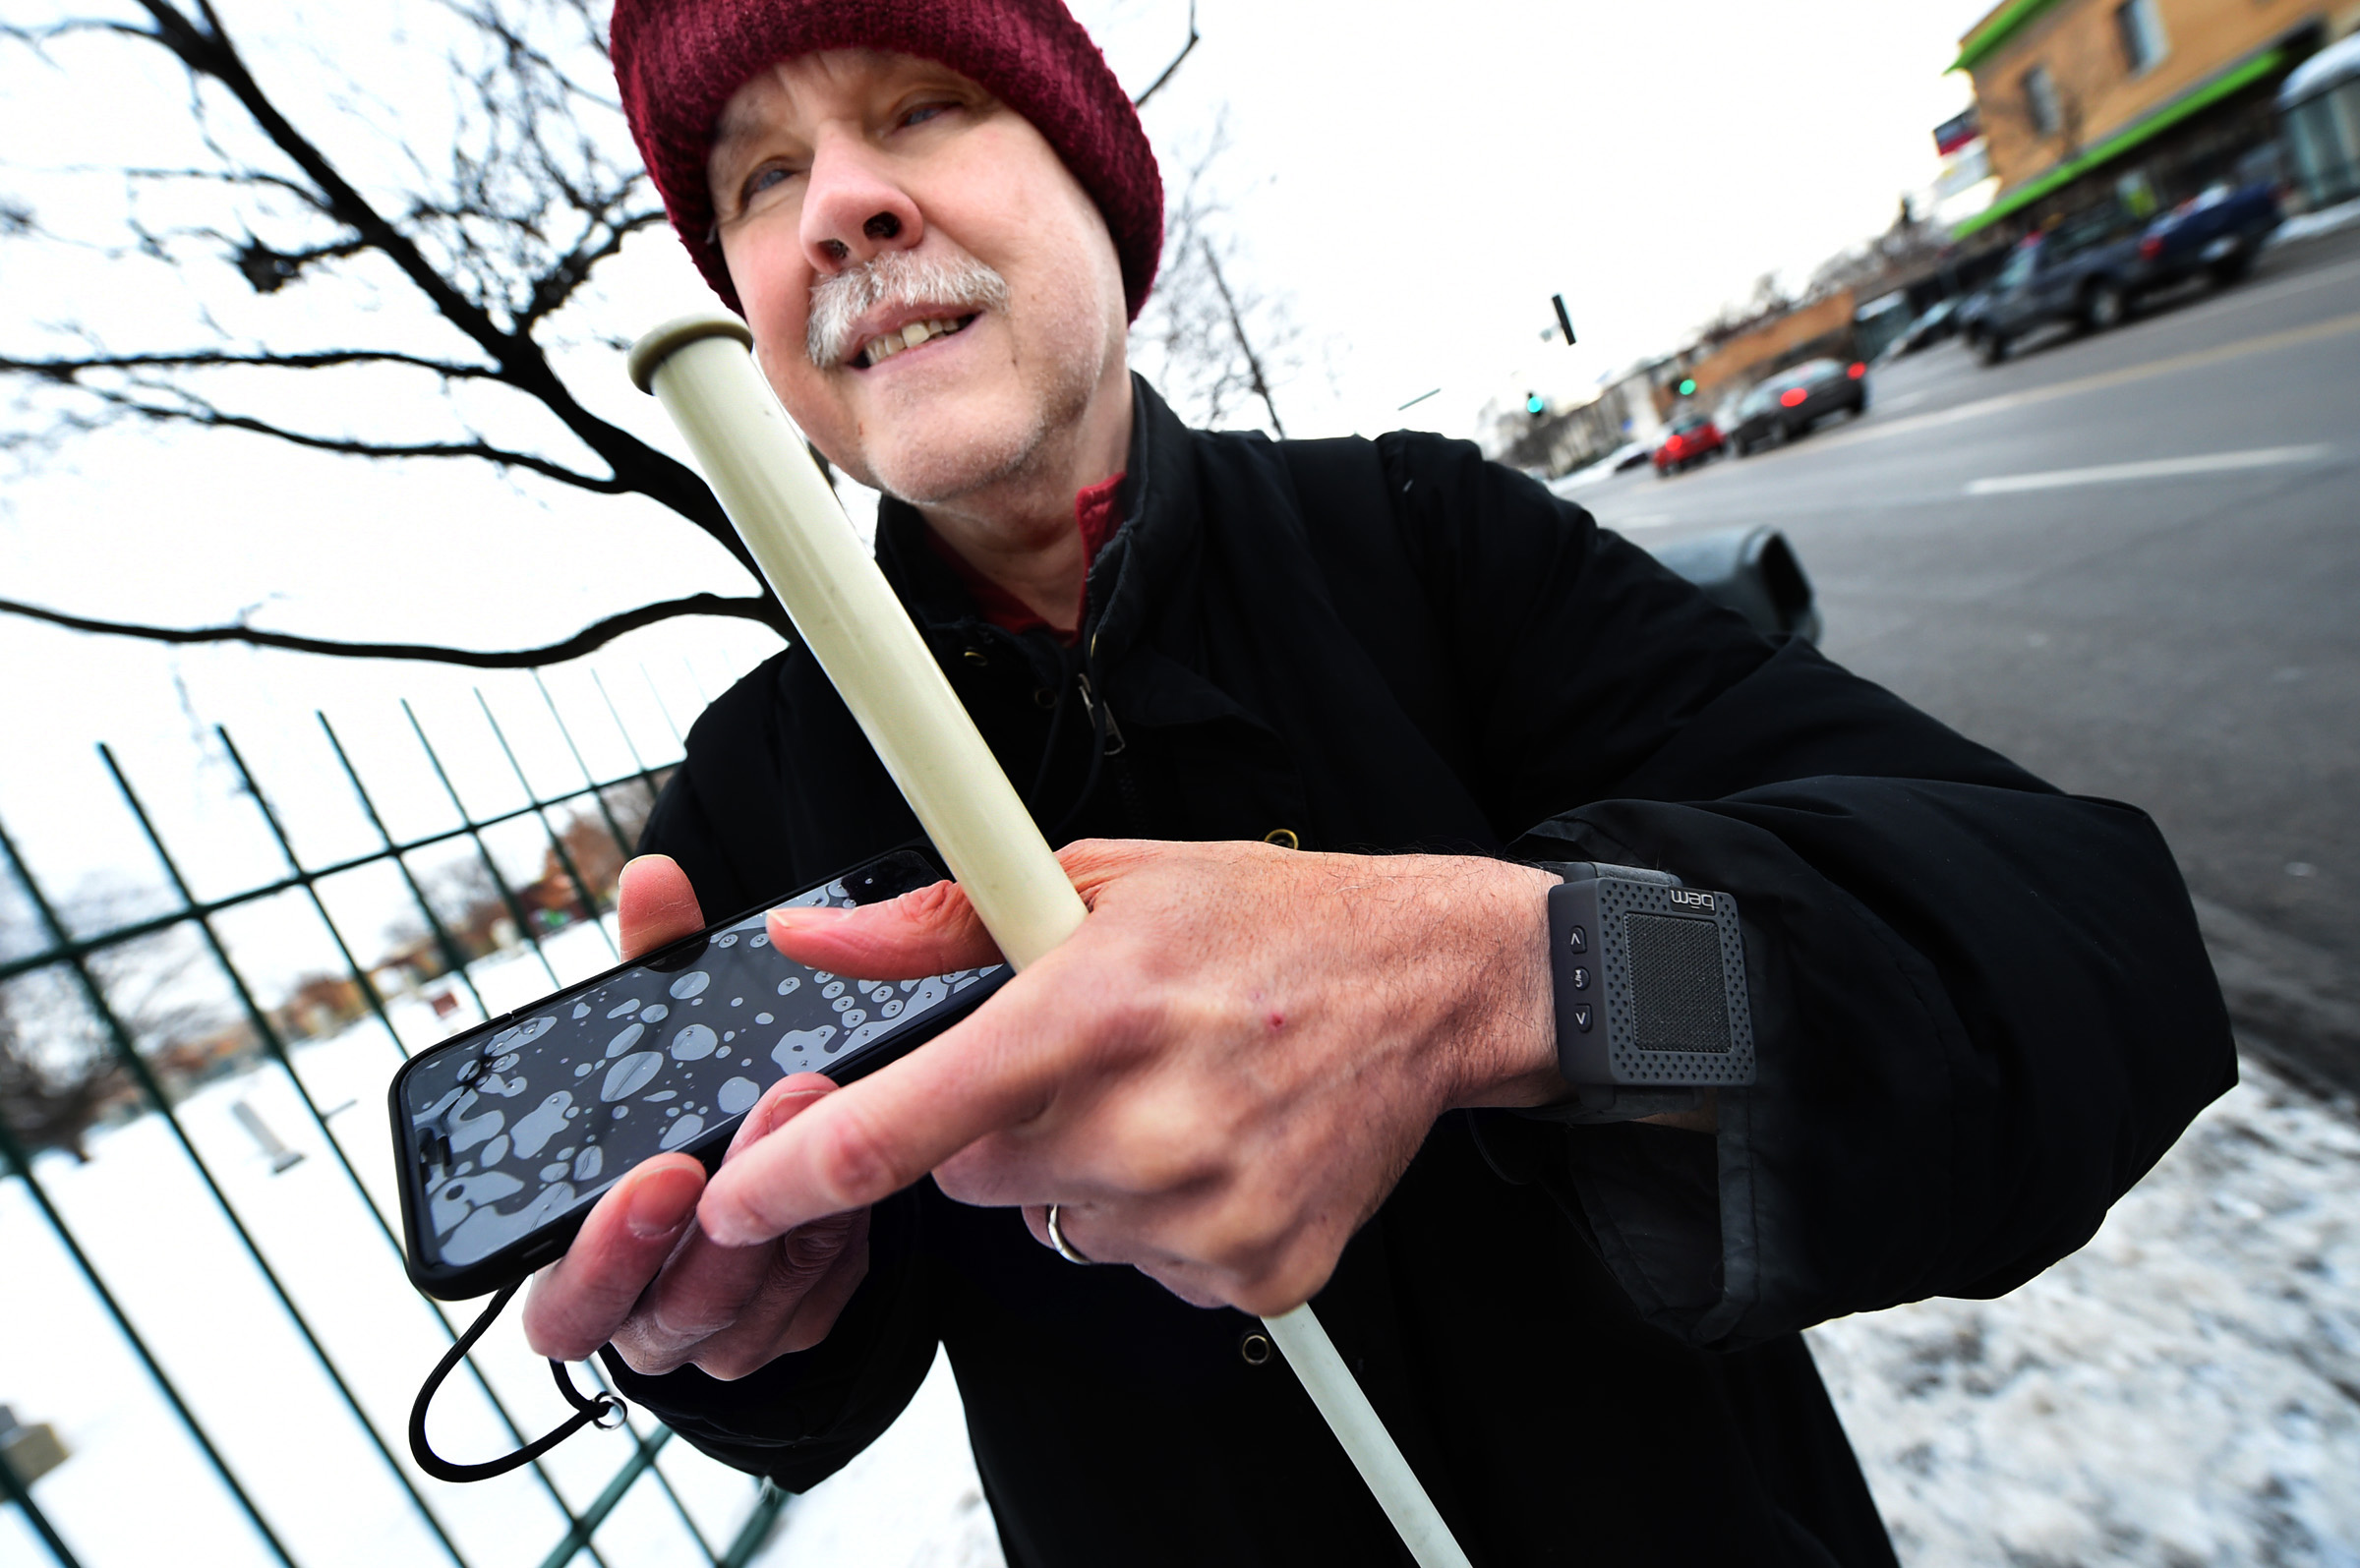 Blind person using mobile phone